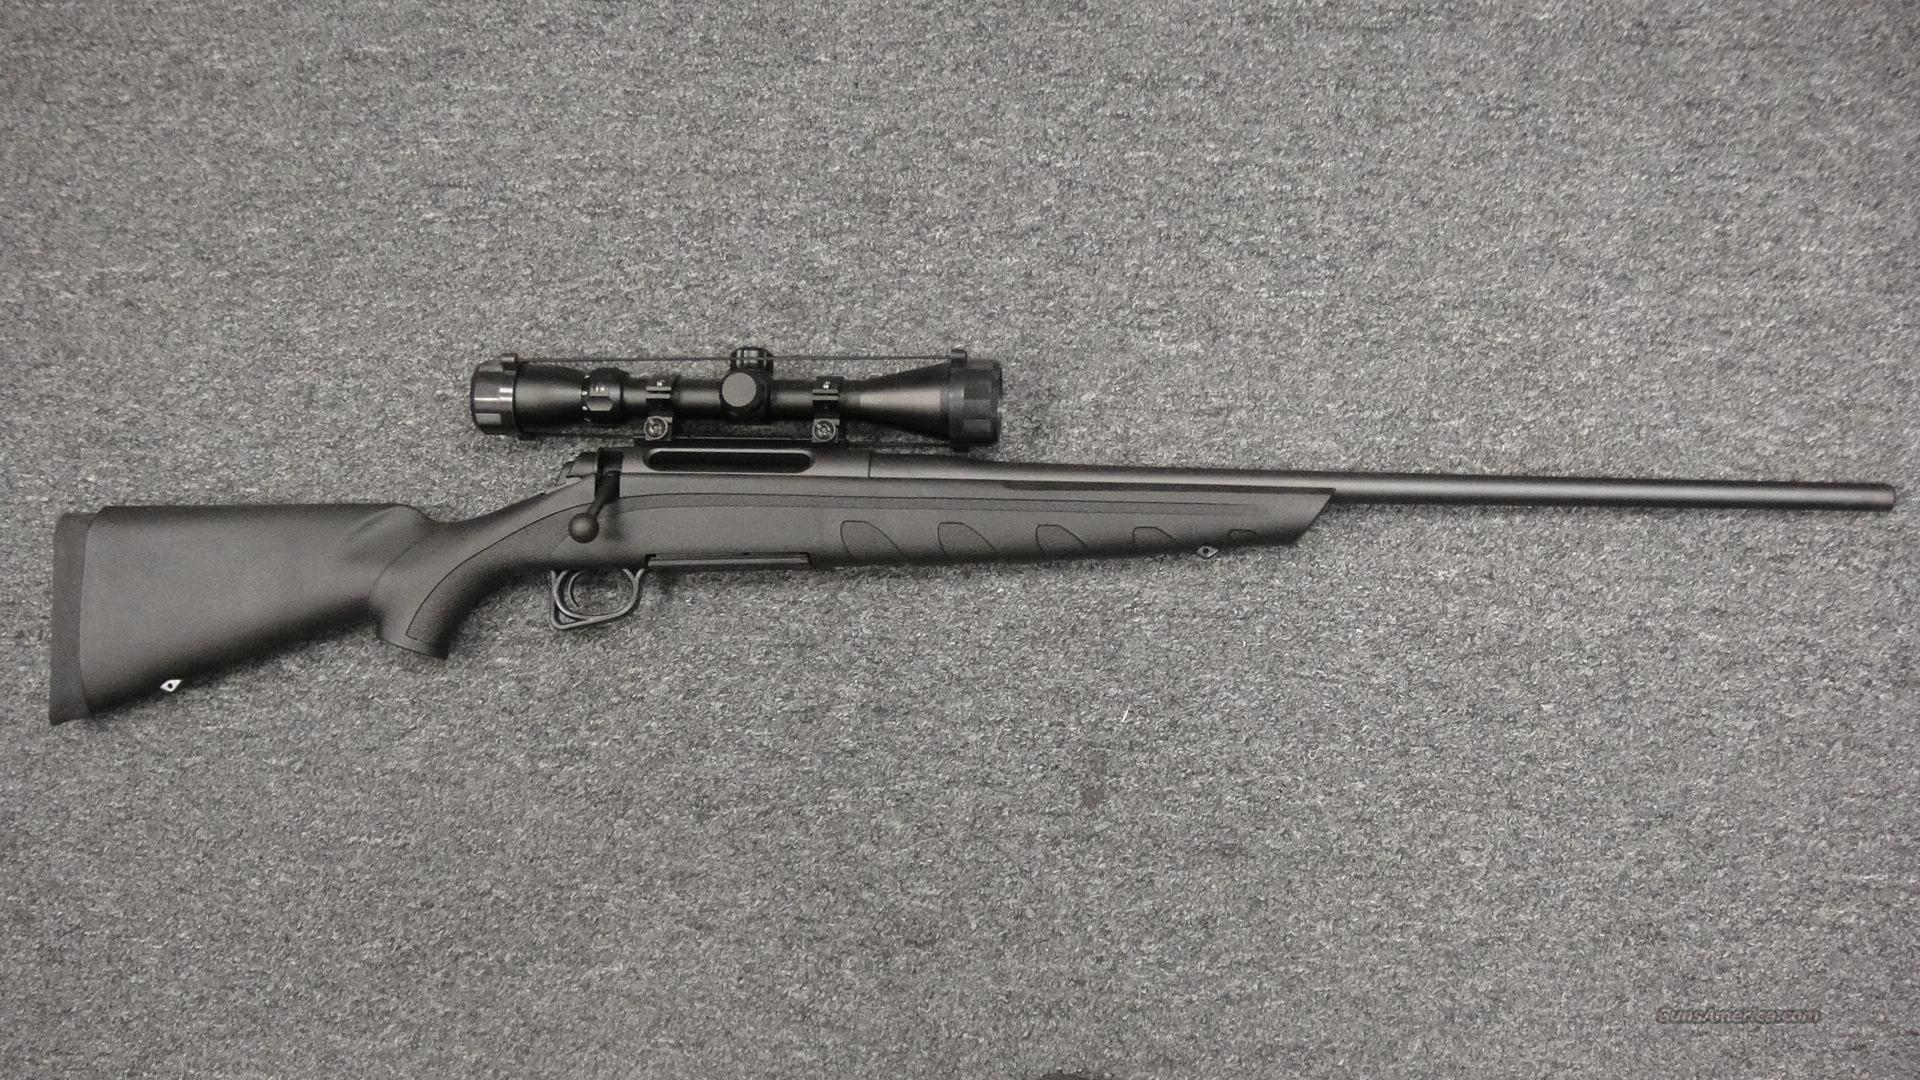 Remington 770 w/3-9x40 scope  Guns > Rifles > Remington Rifles - Modern > Bolt Action Non-Model 700 > Tactical